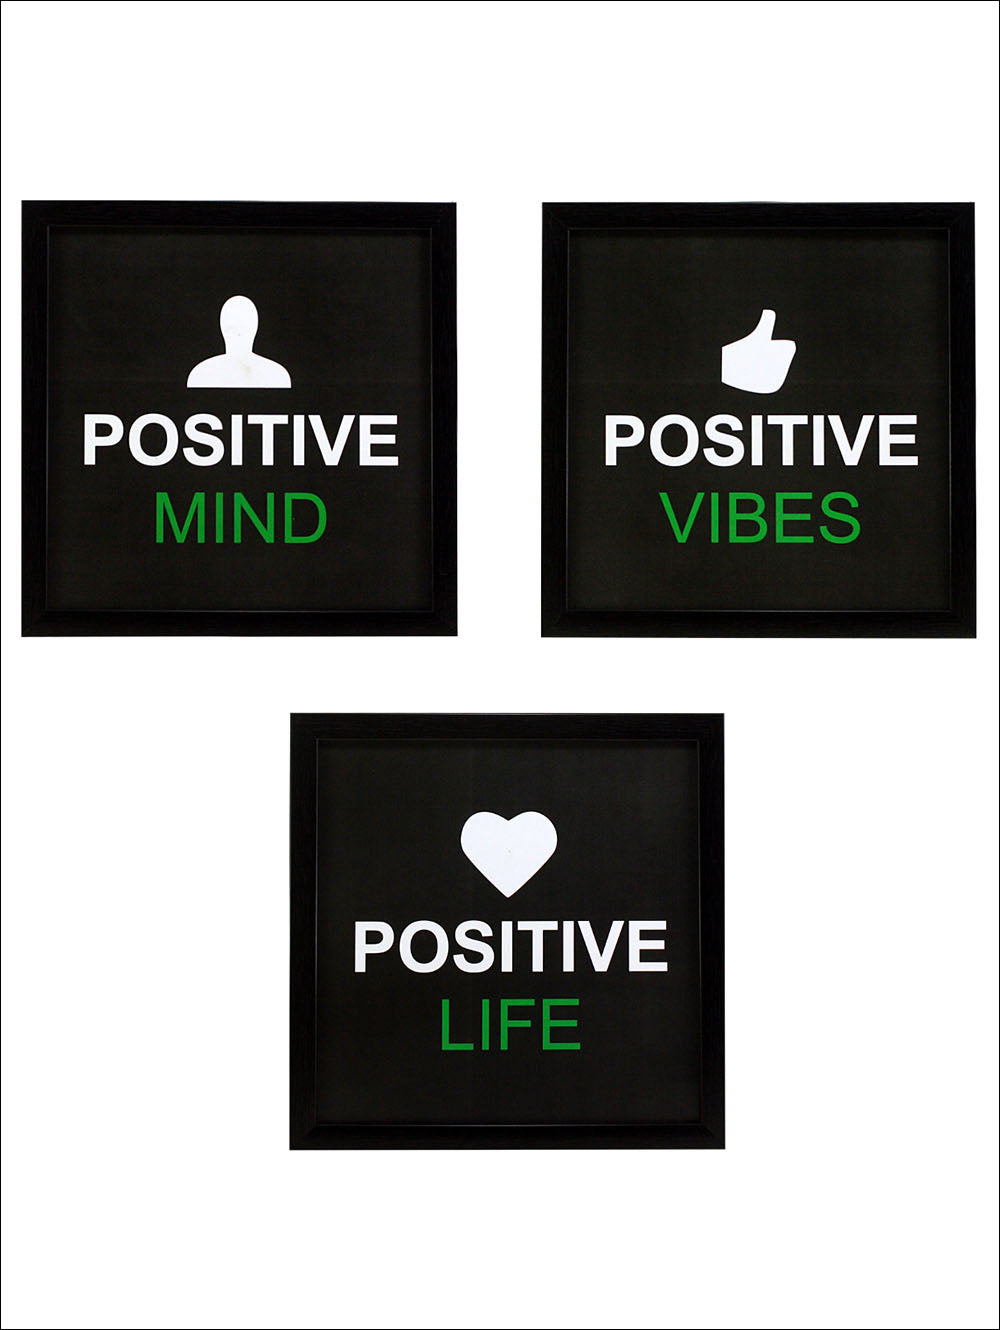 3 Piece Set Of Framed Wall Hanging Motivational Spiritual Art Prints Positive Mind Vibes Life Without Glass